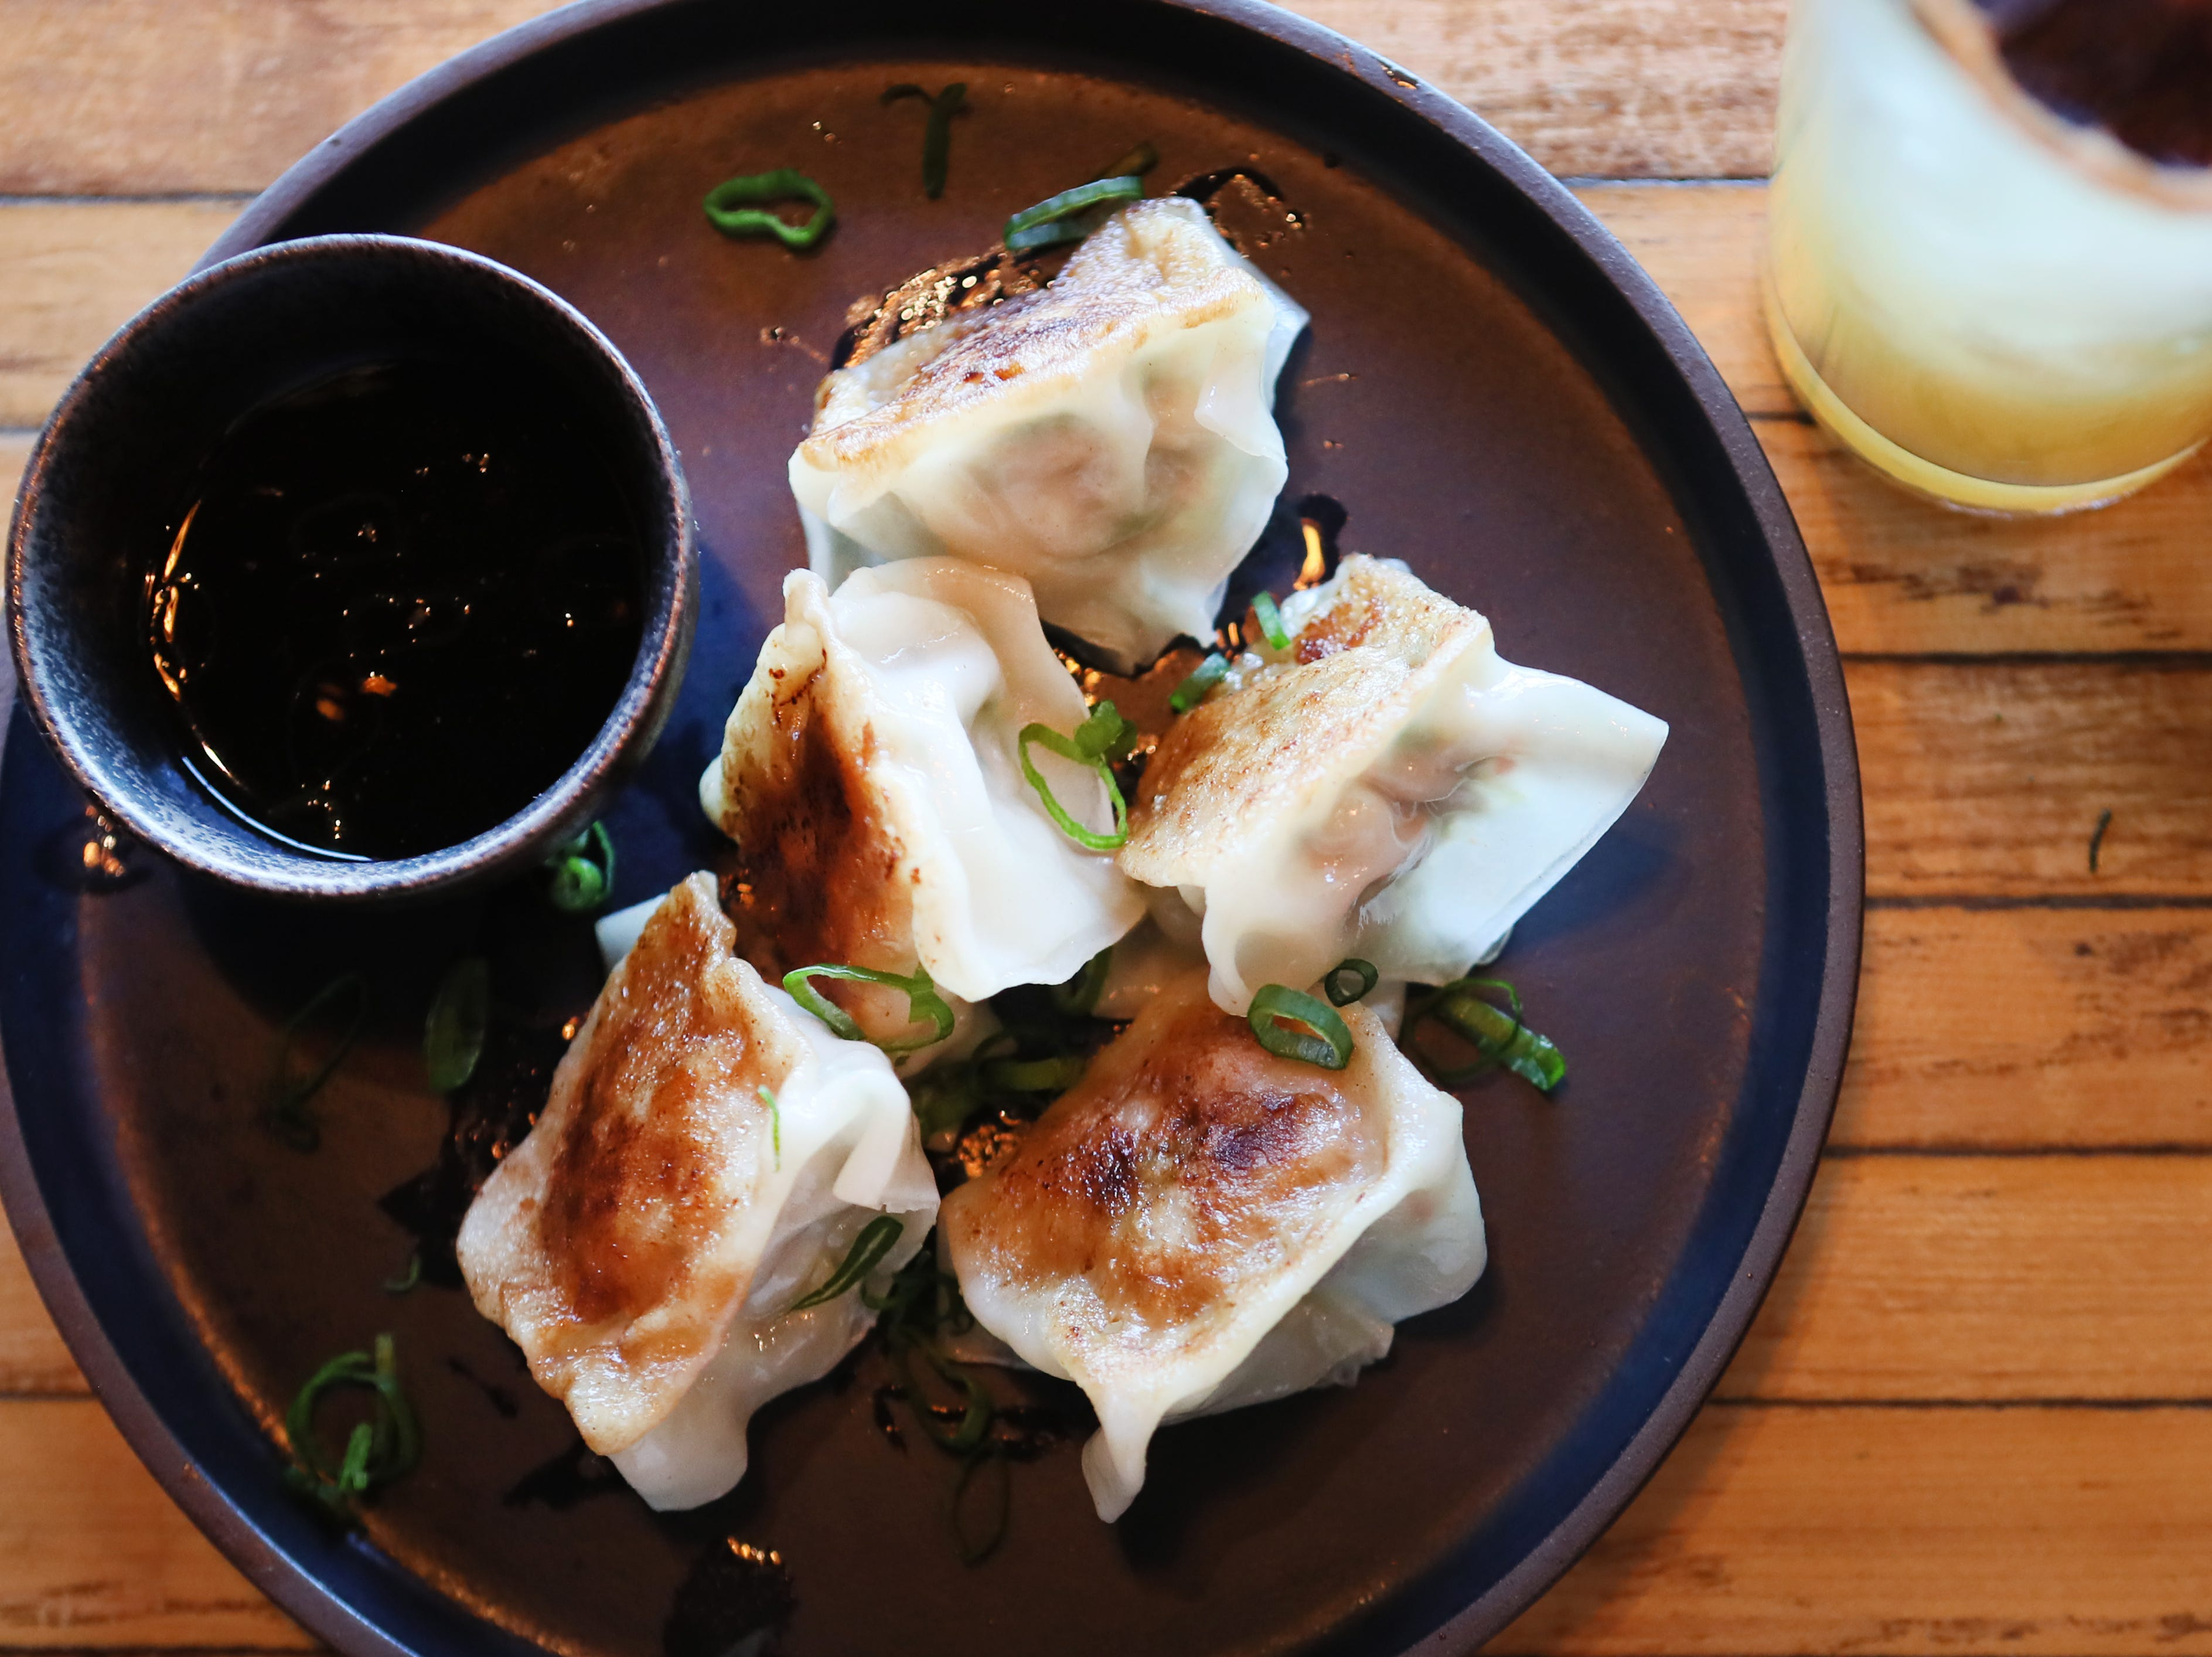 Pork dumplings with ginger, carrots and a scallions garnish at Lucky Cat, a ramen shop on Broad Avenue which officially opened its door to the public on Friday, Jan. 25, 2019.